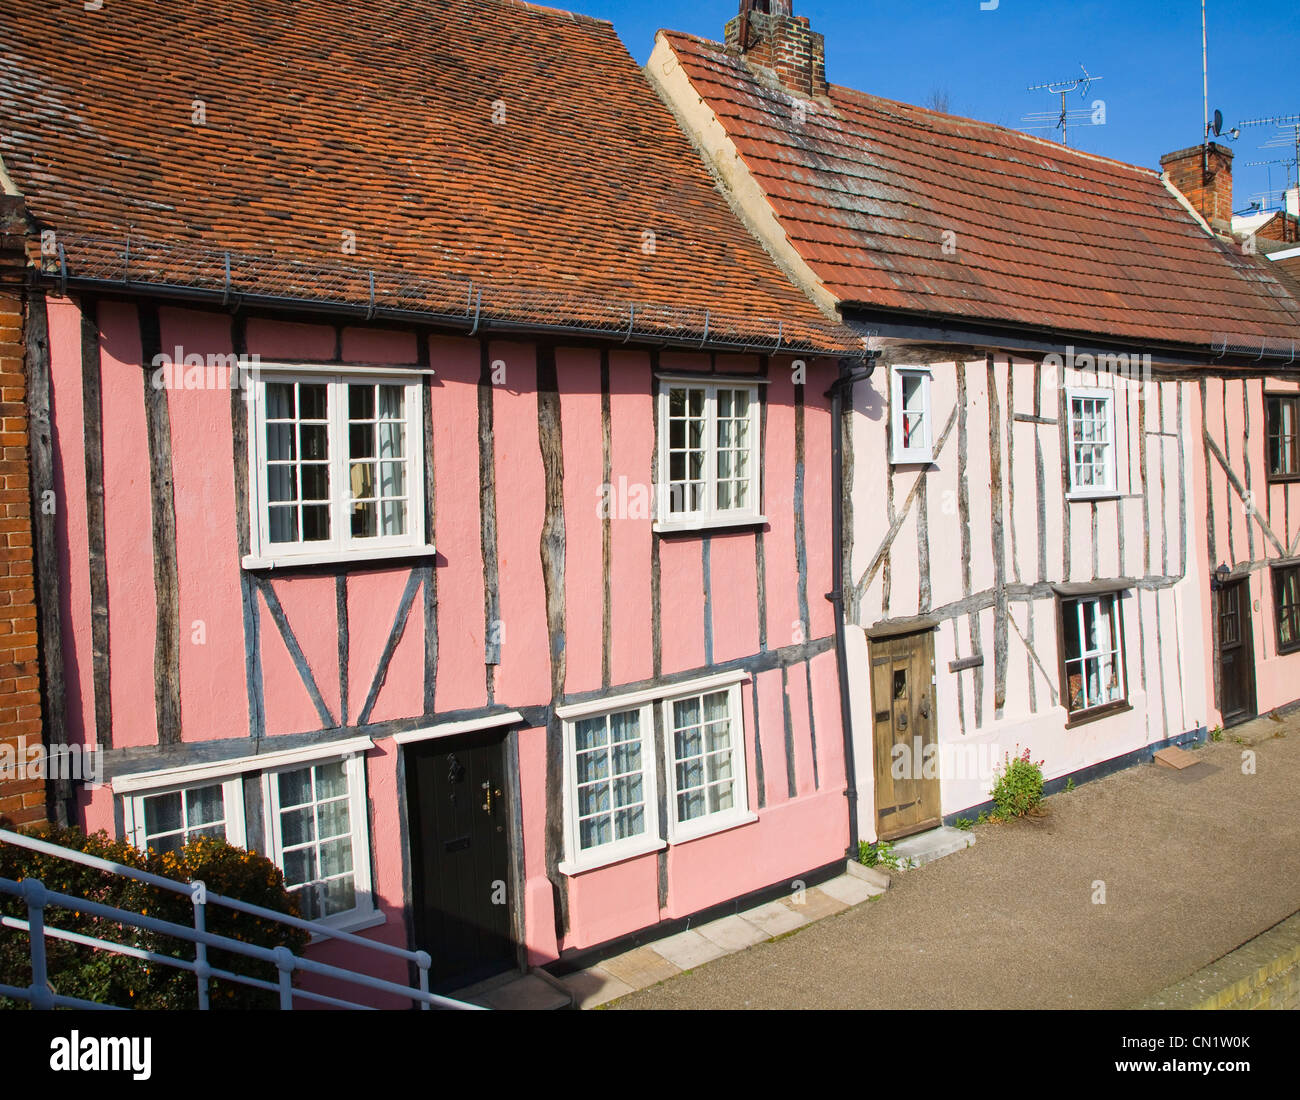 Half timbered cottages Colchester, Essex, England - Stock Image